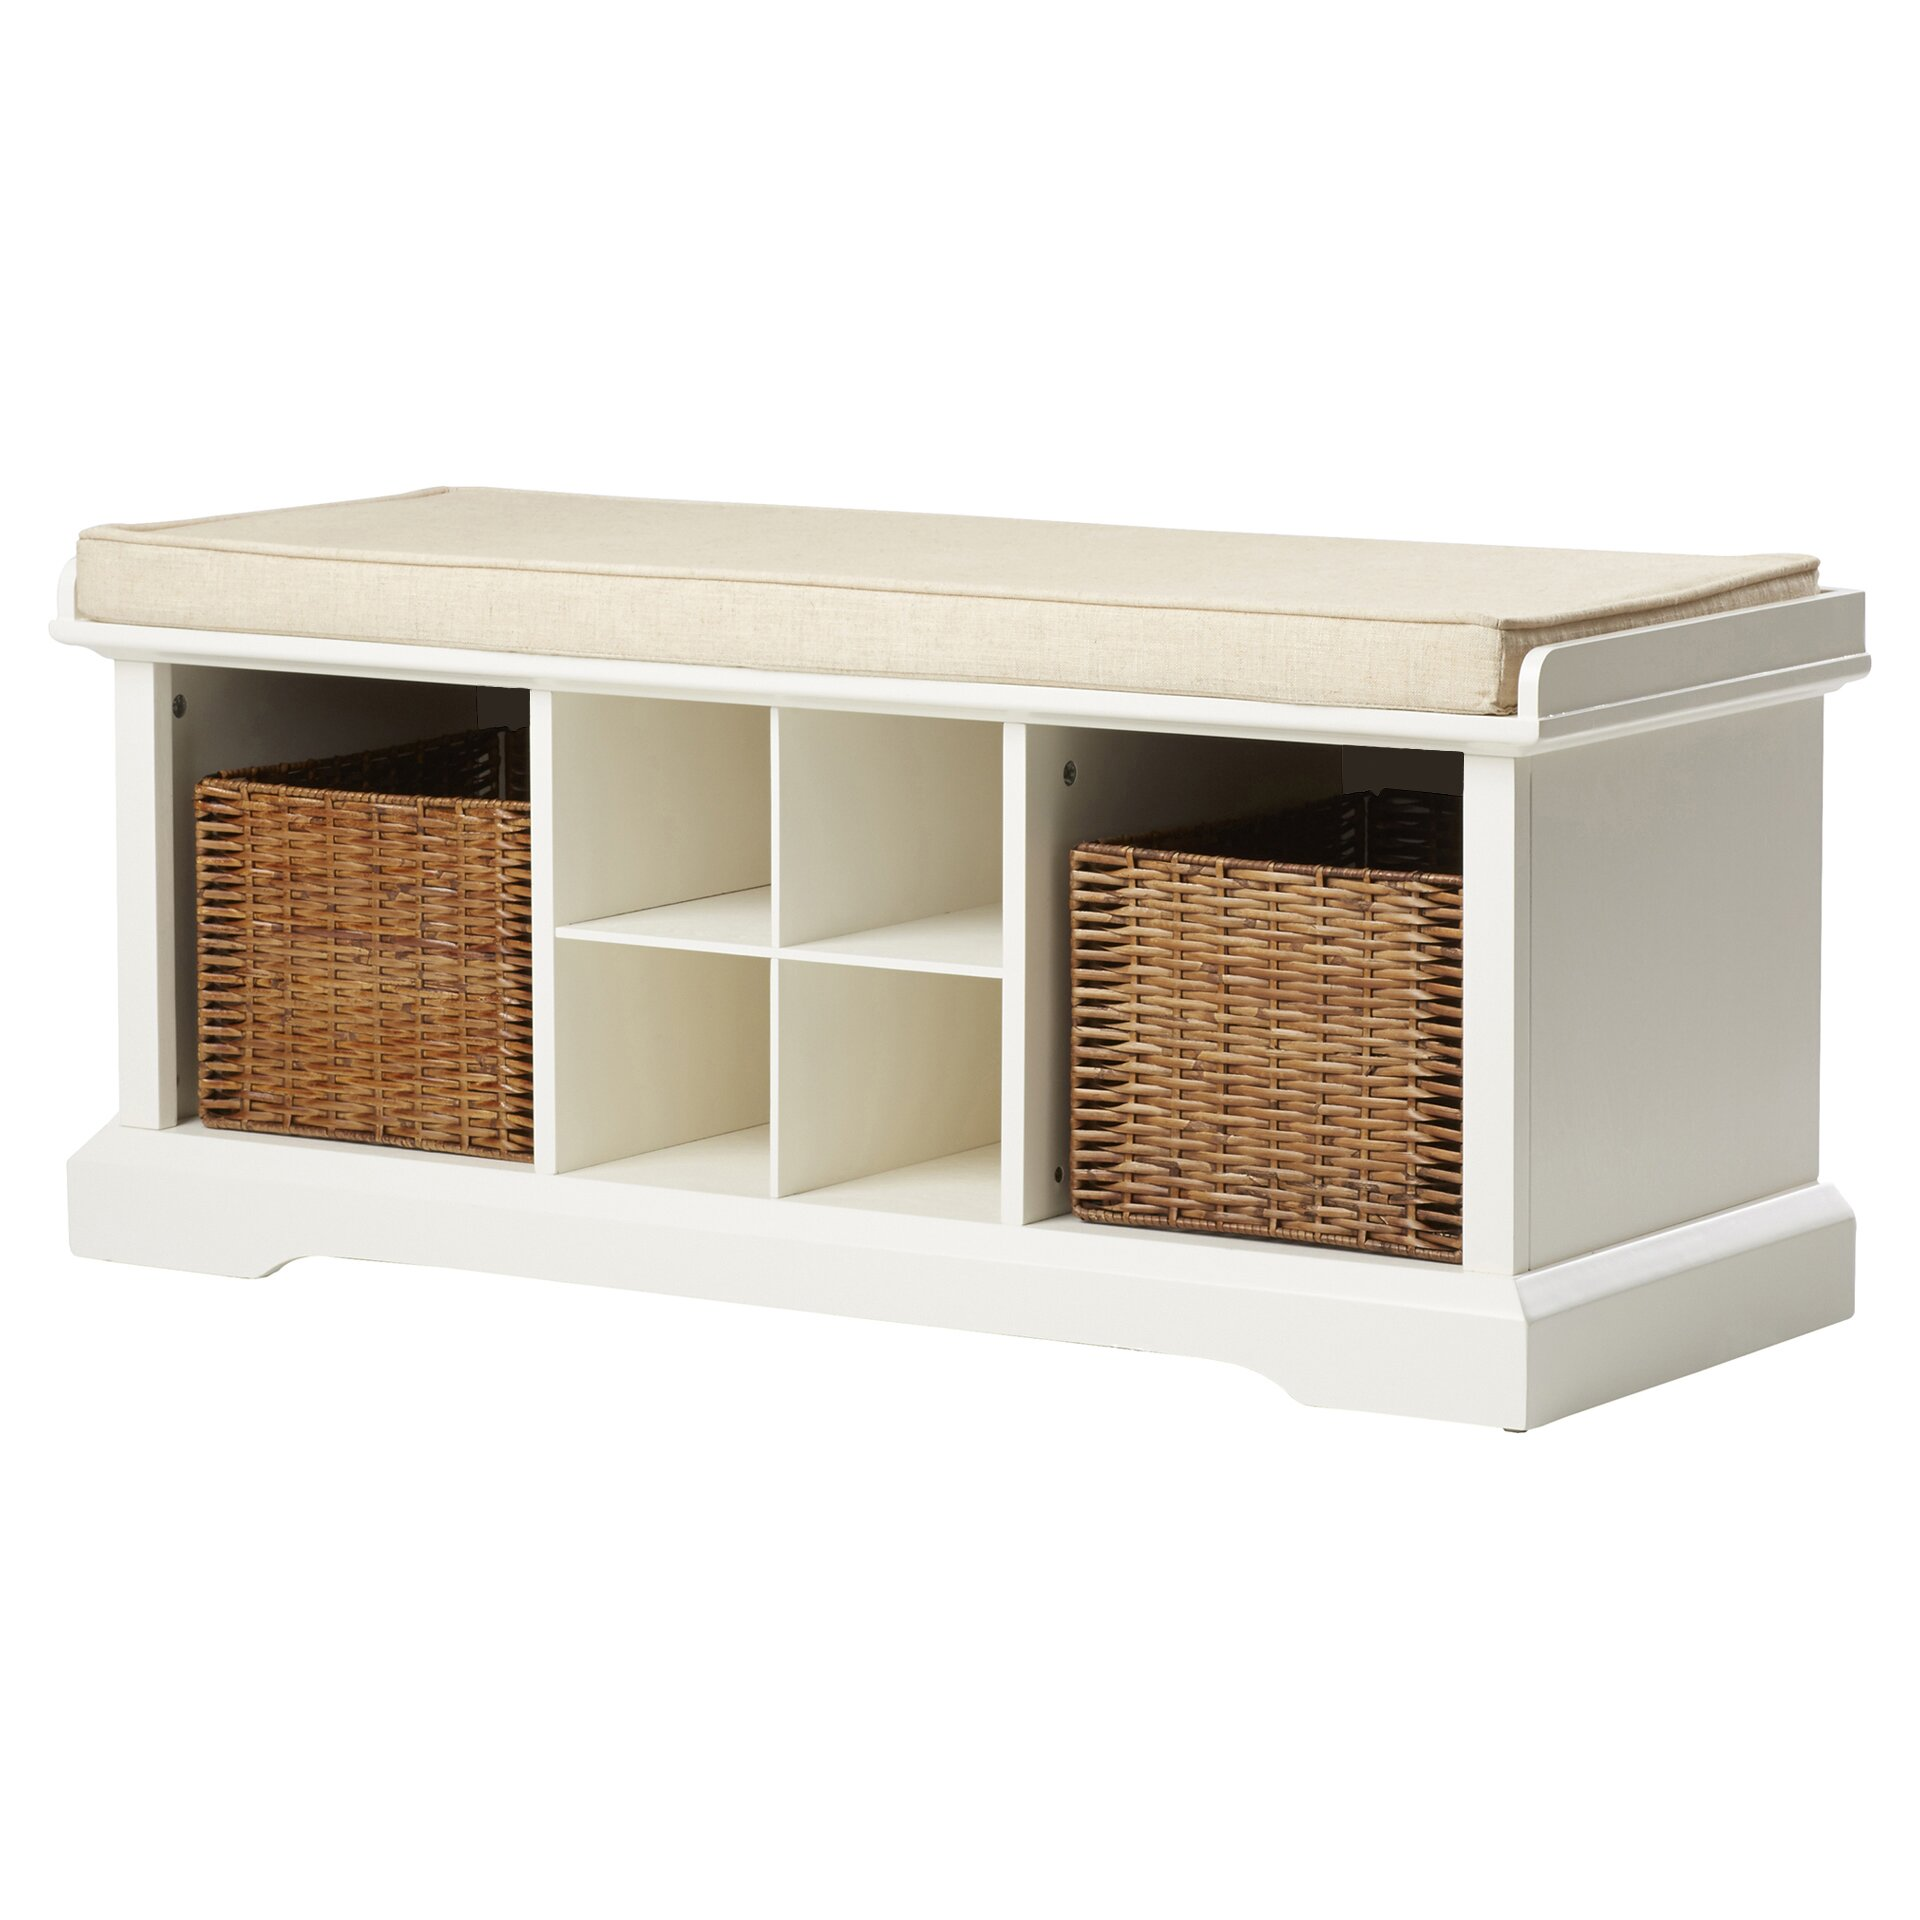 Foyer With Bench : Breakwater bay selbyville storage entryway bench reviews